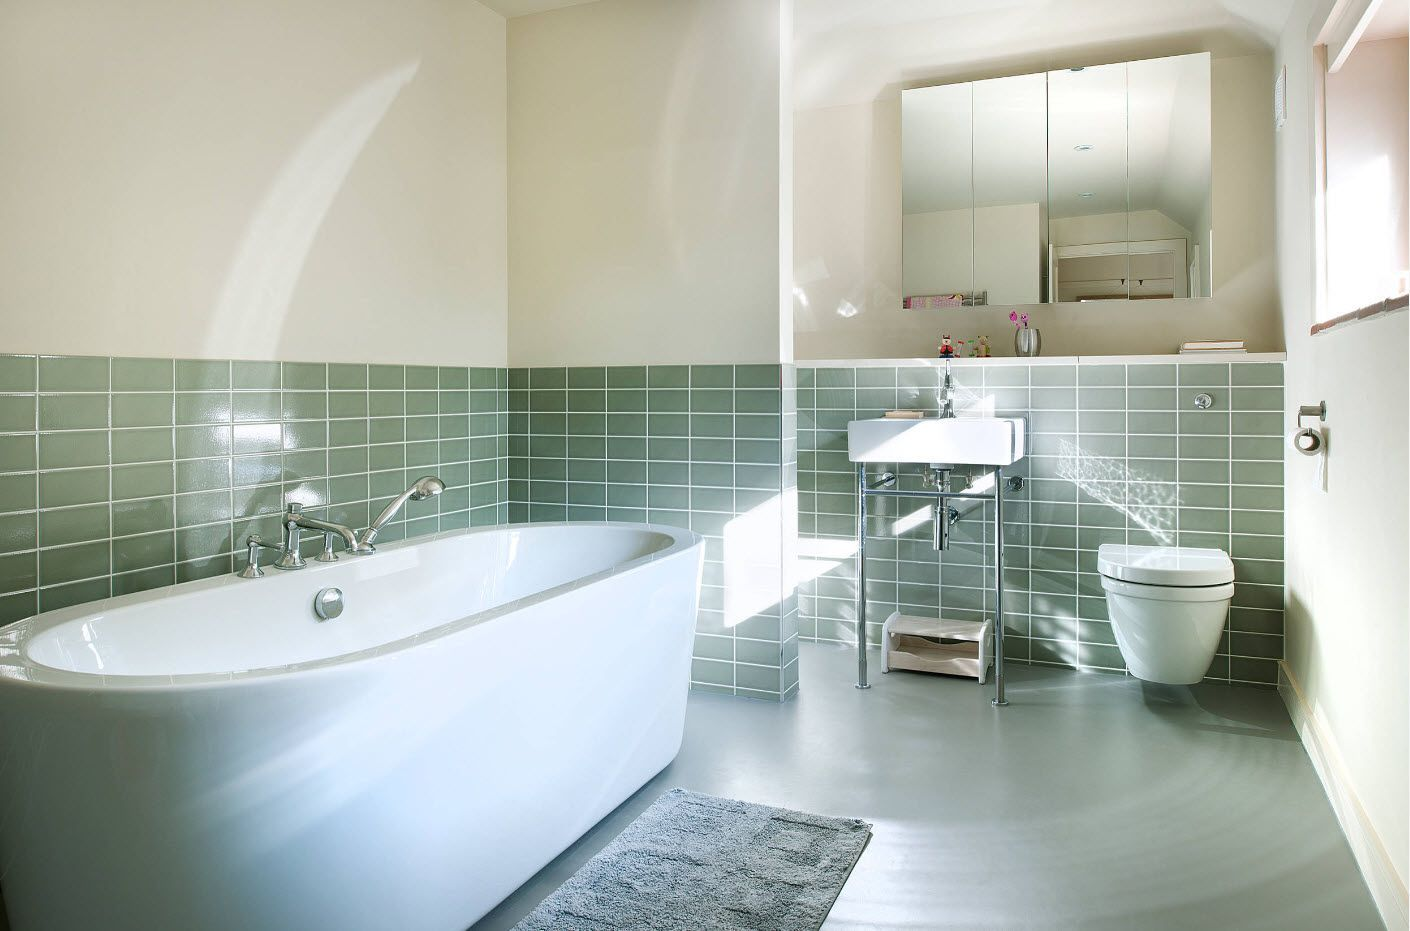 Turquoise metro tile for the lower part of the bathroom in white and light gray palette